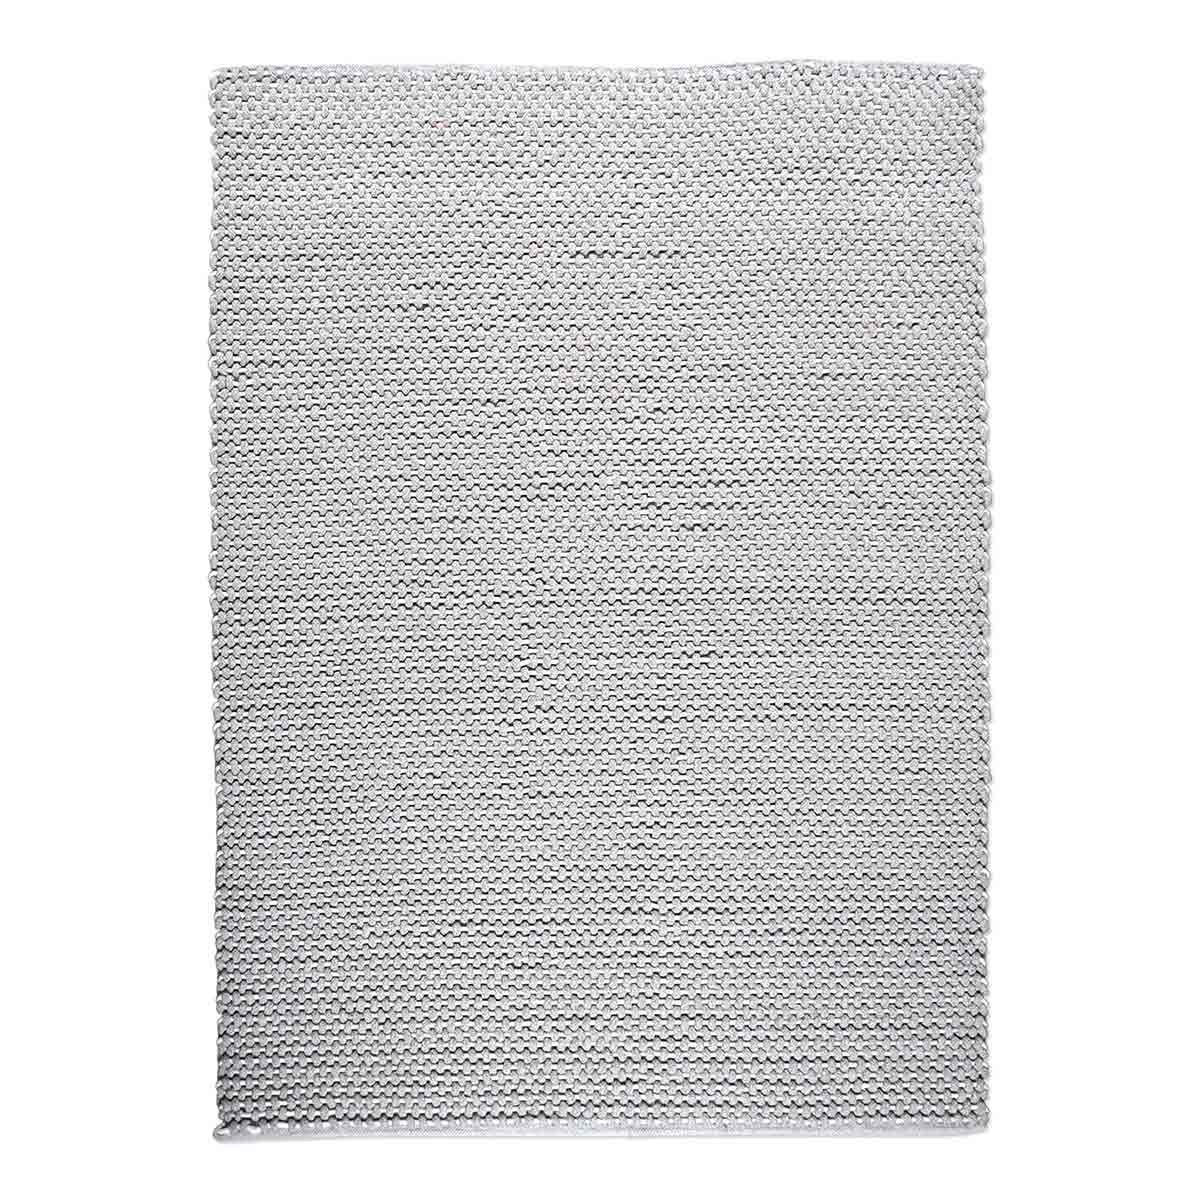 Uttermost Colemar 9 x 12 Rug - Gray